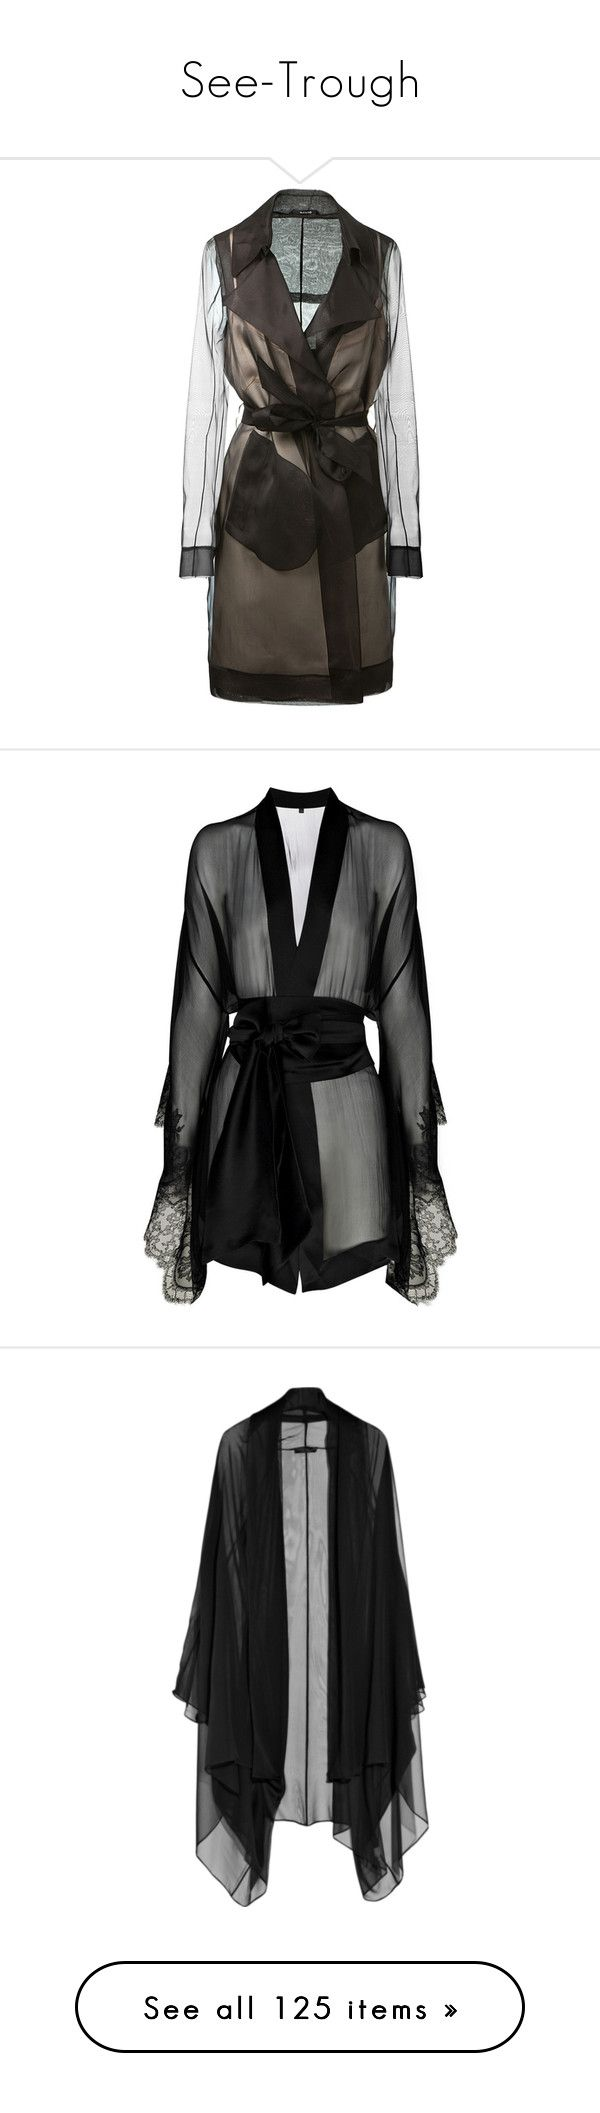 """""""See-Trough"""" by fufuun ❤ liked on Polyvore featuring tops, silk chiffon top, transparent tops, sheer top, see through tops, maison margiela, intimates, robes, lingerie and dresses"""